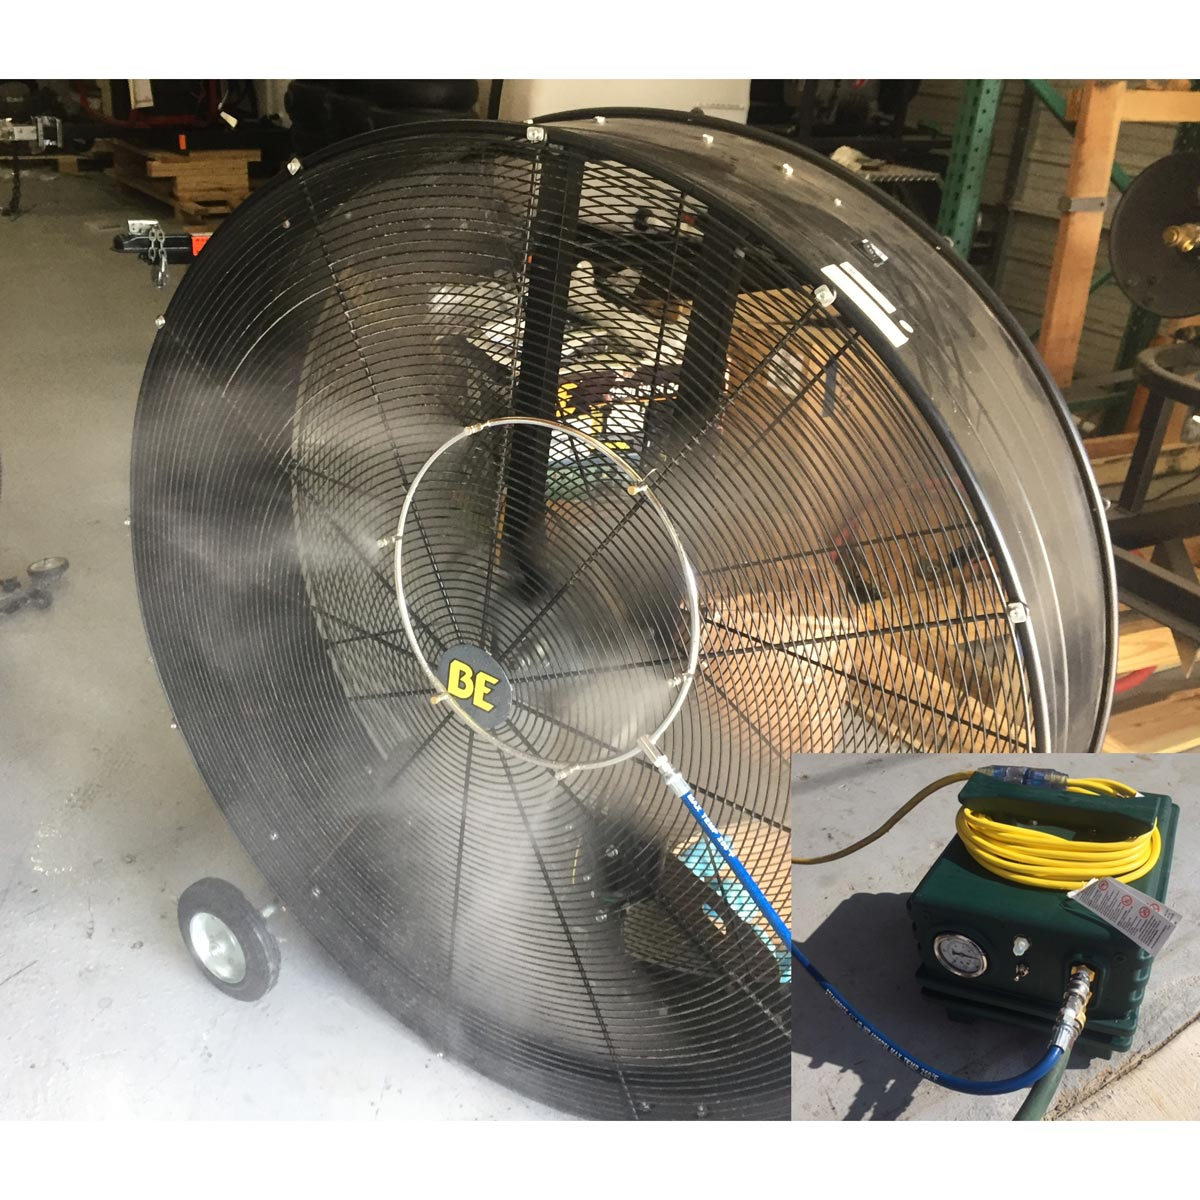 -Mist Storm 1000 psi 6 Nozzle Portable High Pressure Misting System - Fan Not Included 20180811